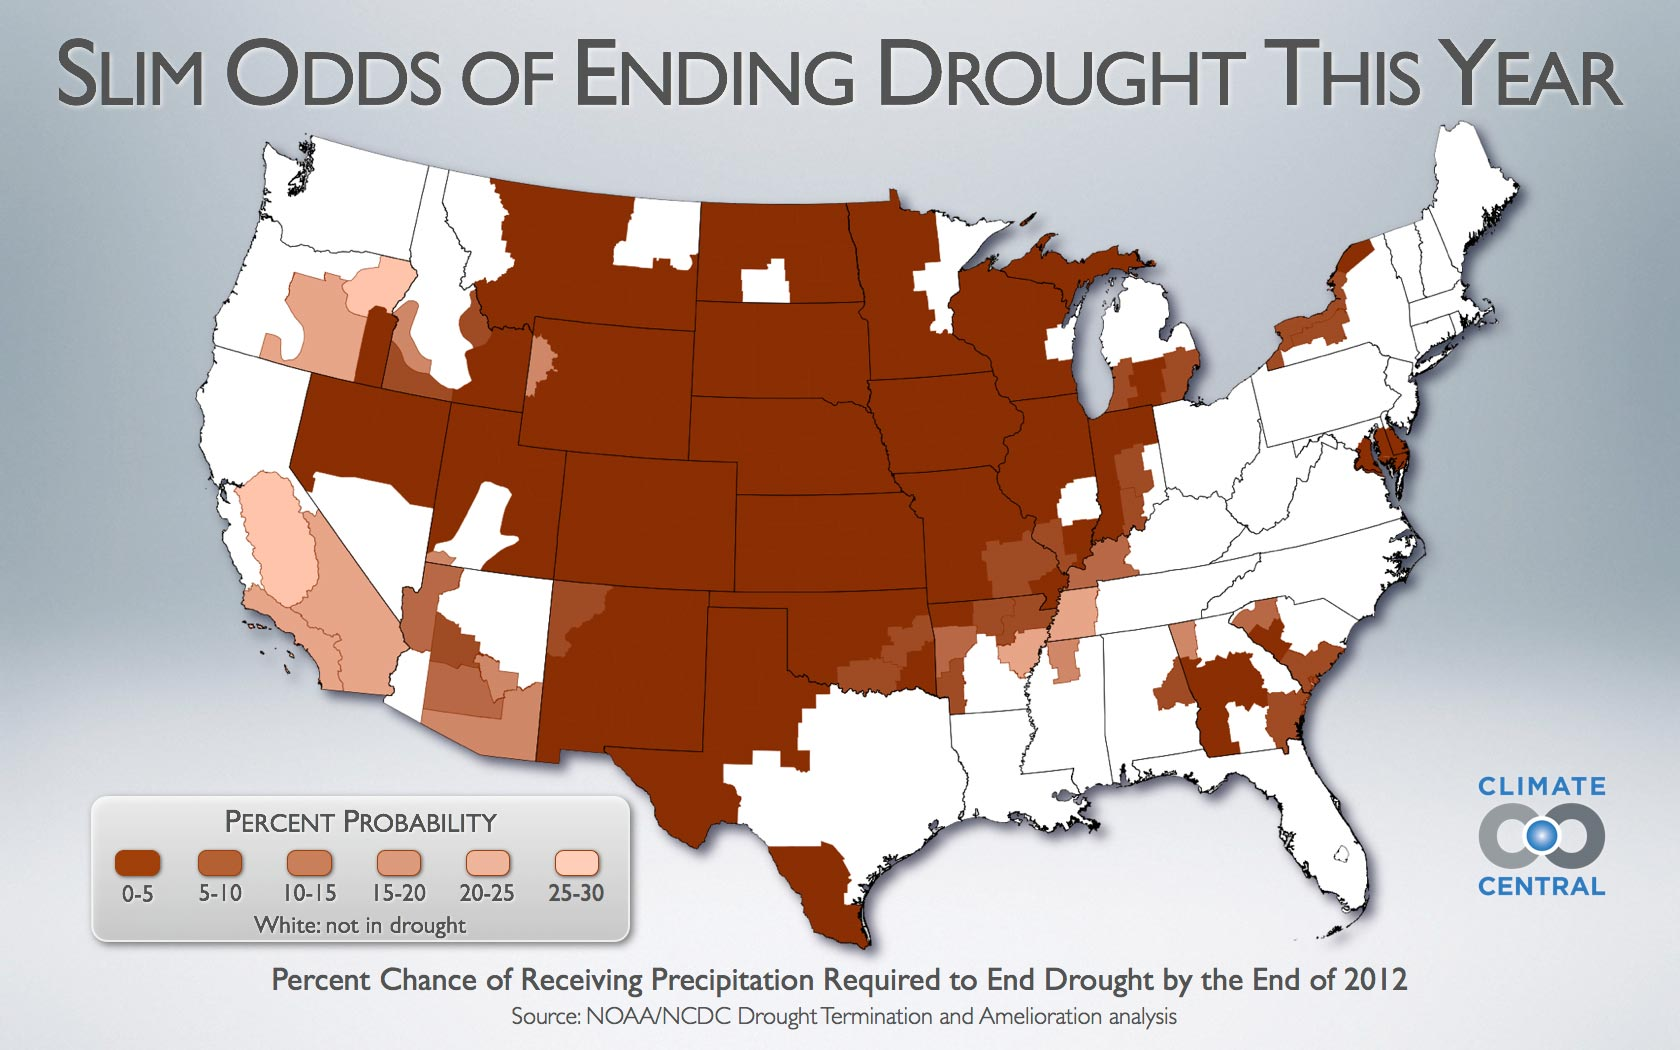 Slim Odds of Ending the Drought this Year